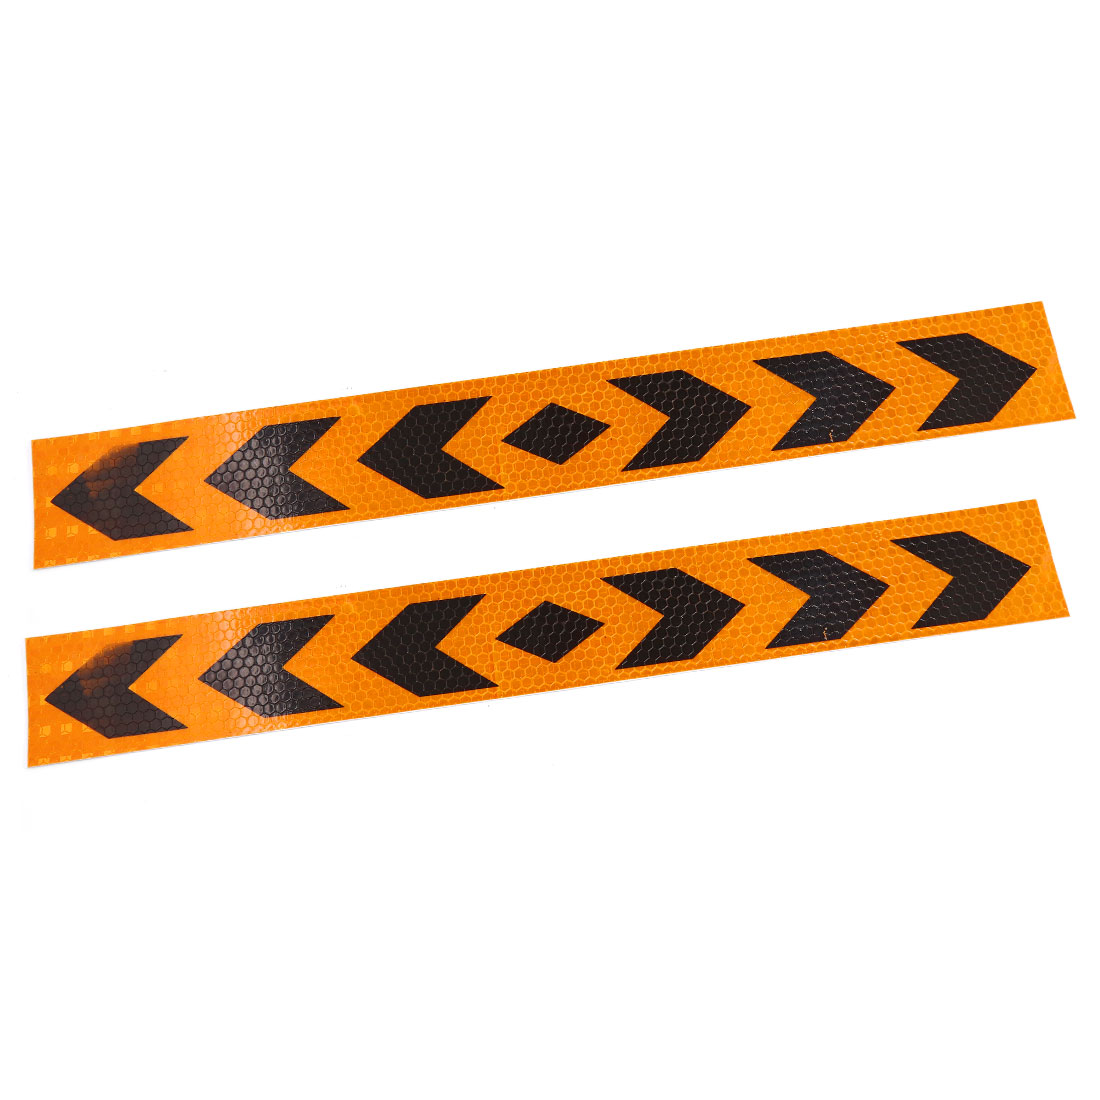 2 Pcs 39cm x 4.8cm Arrows Print Adhesive Reflective Sticker Orange Black